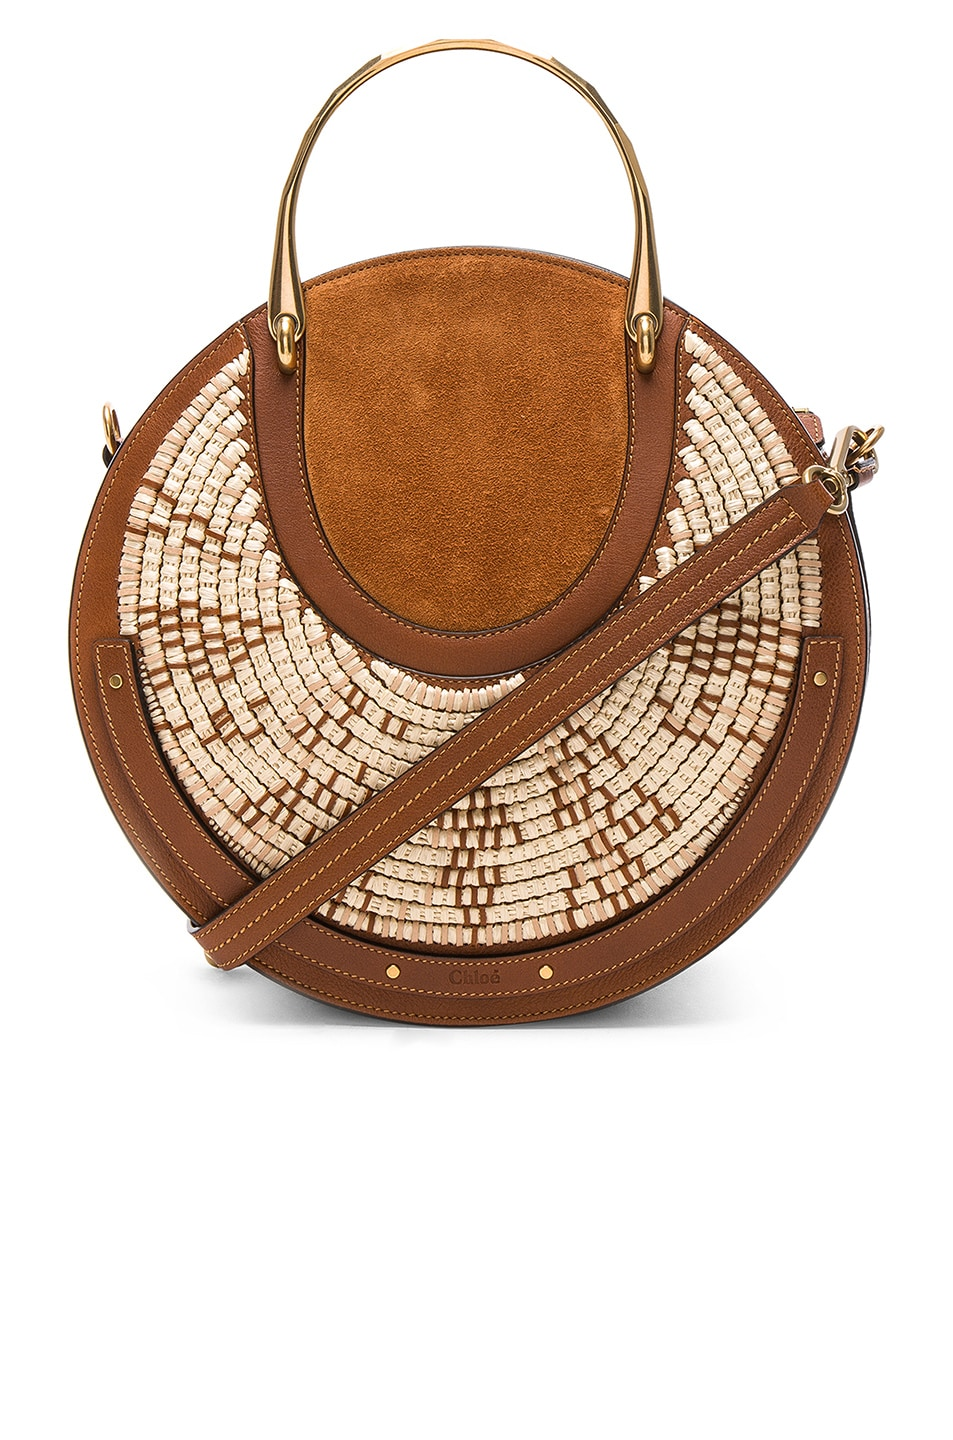 Image 1 of Chloe Medium Pixie Raffia with Calfskin & Suede Double Handle Bag in Caramel